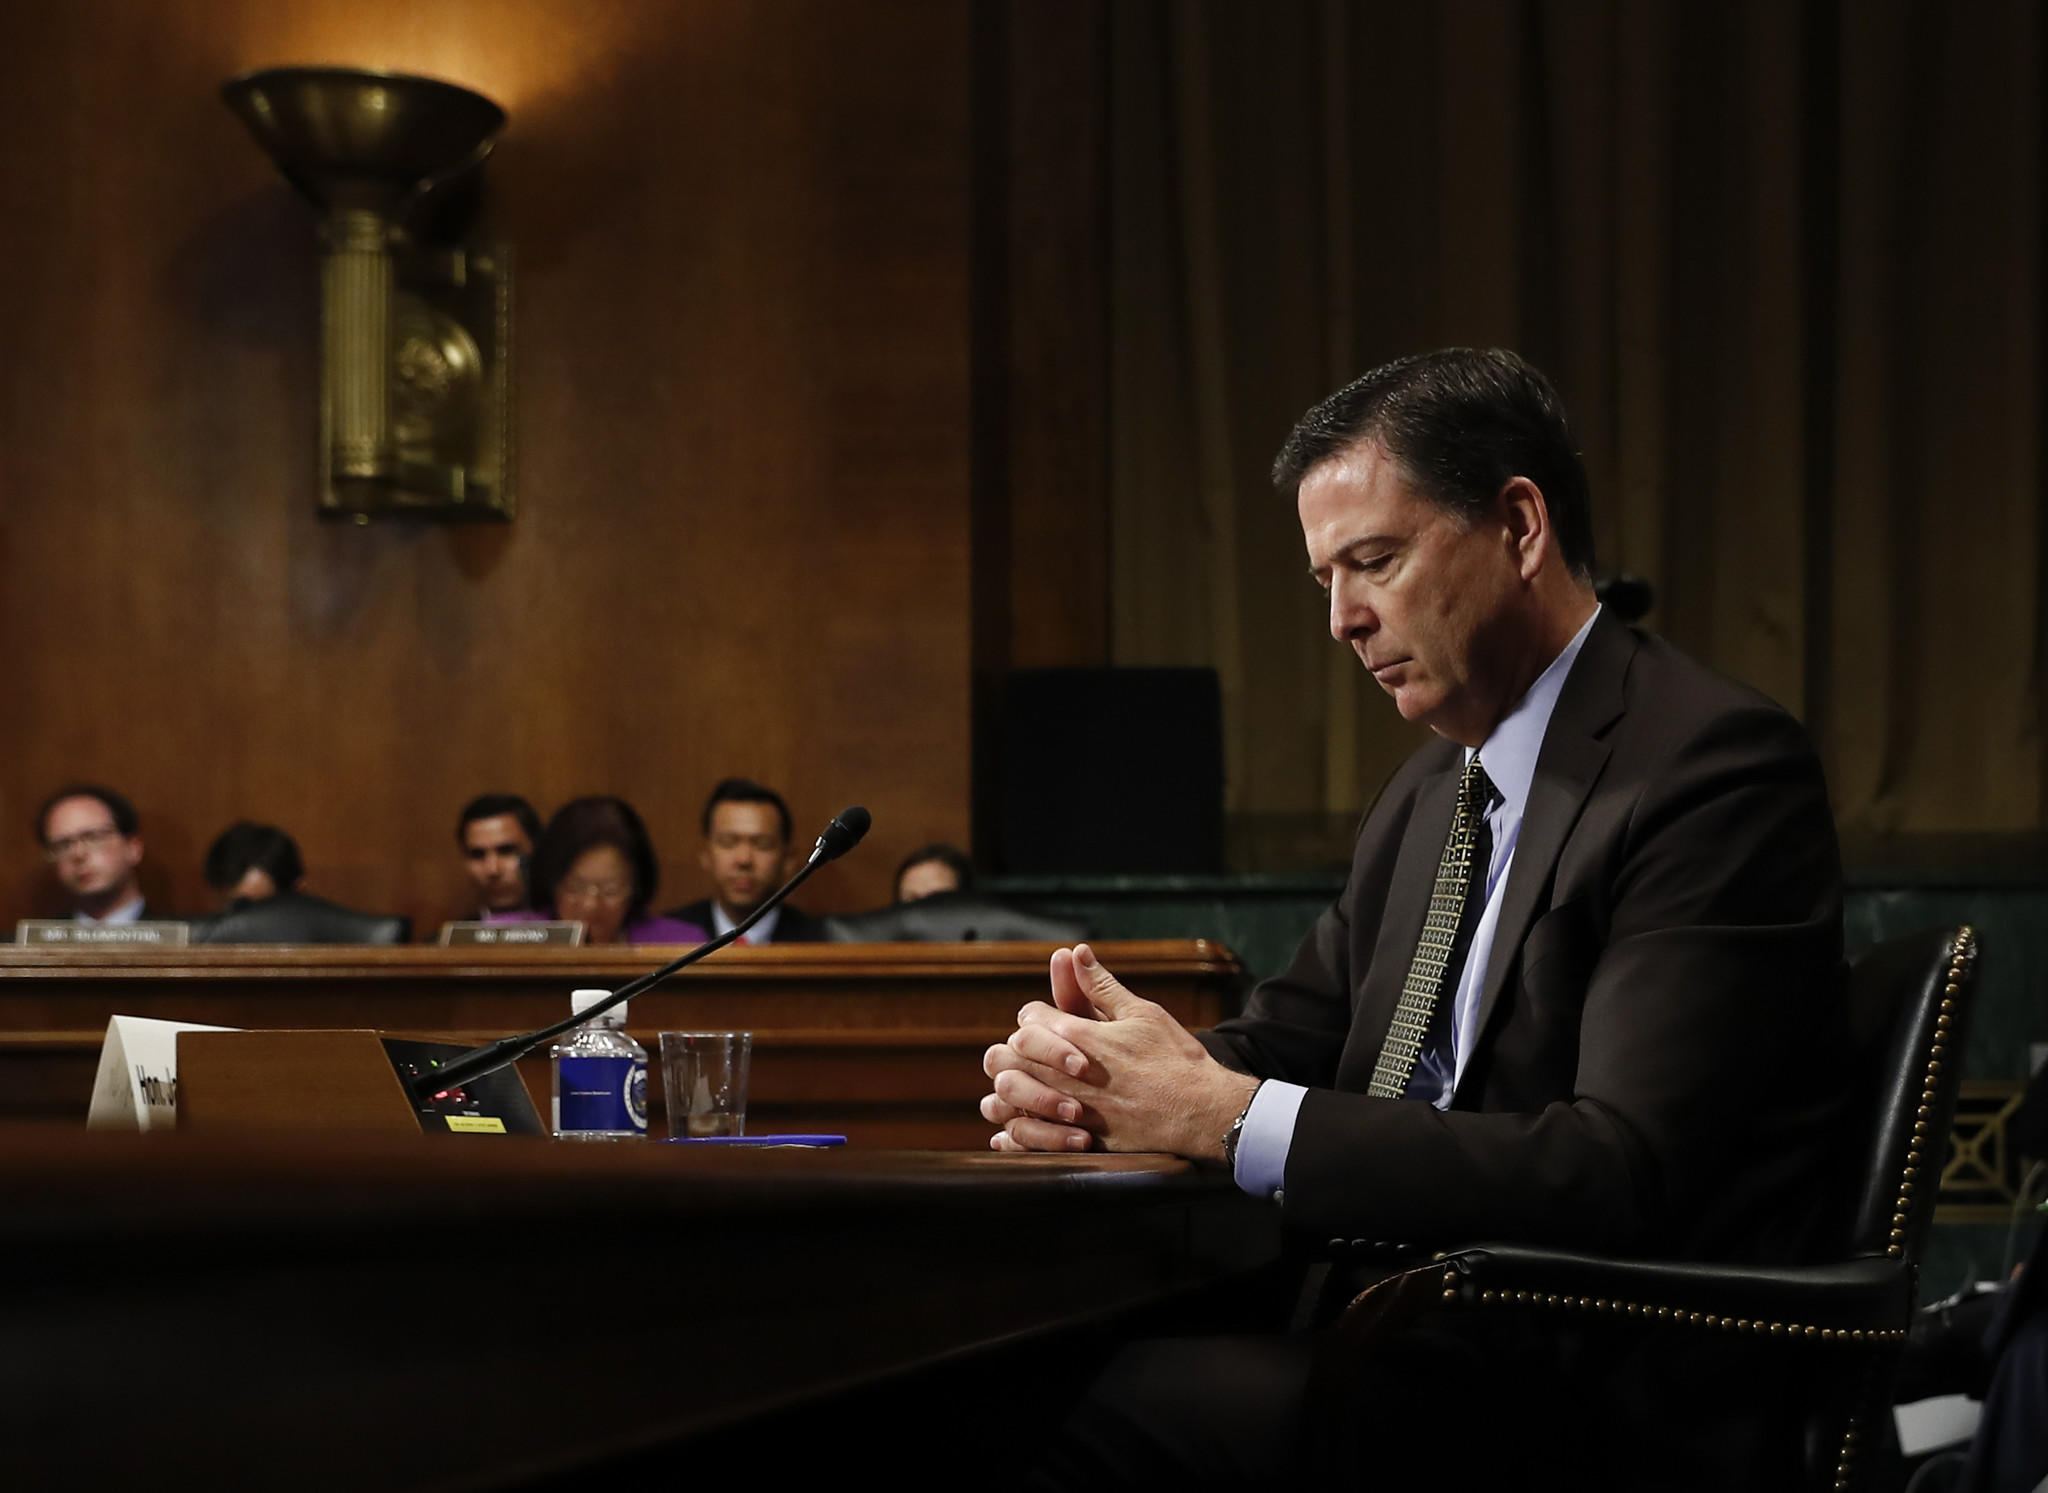 Then-FBI Director James Comey pauses as he testifies at a Senate Judiciary Committee hearing on May 3. (Carolyn Kaster / Associated Press)